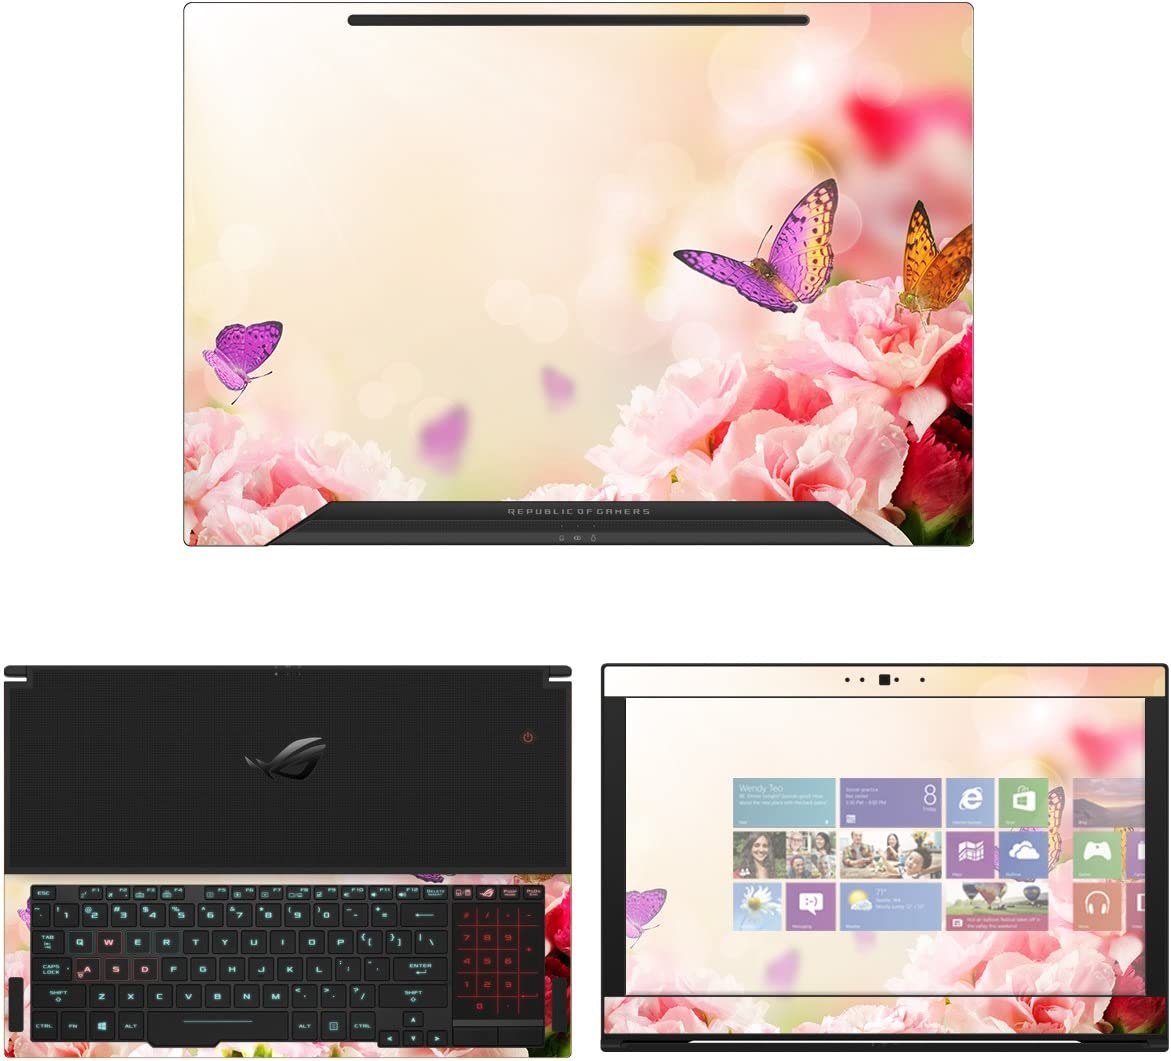 decalrus - Protective Decal New Shipping Free Flower Max 57% OFF Skin for Sticker Asus Zephyru